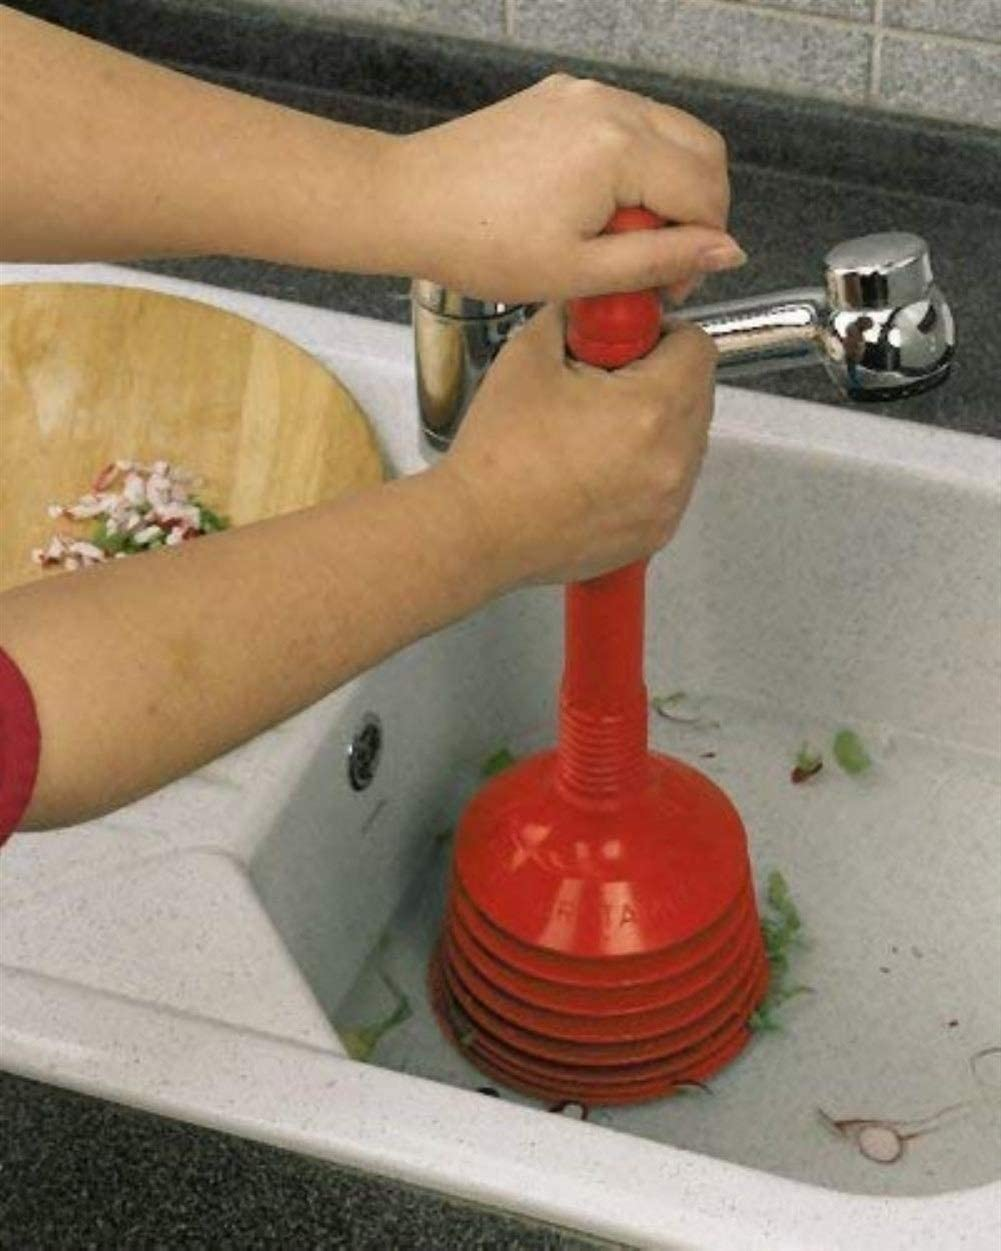 MAOX Professional Toilet Plunger,Detachable Heavy Duty Toilet Plunger for Clogs from Clogged Bathroom Toilets,Red